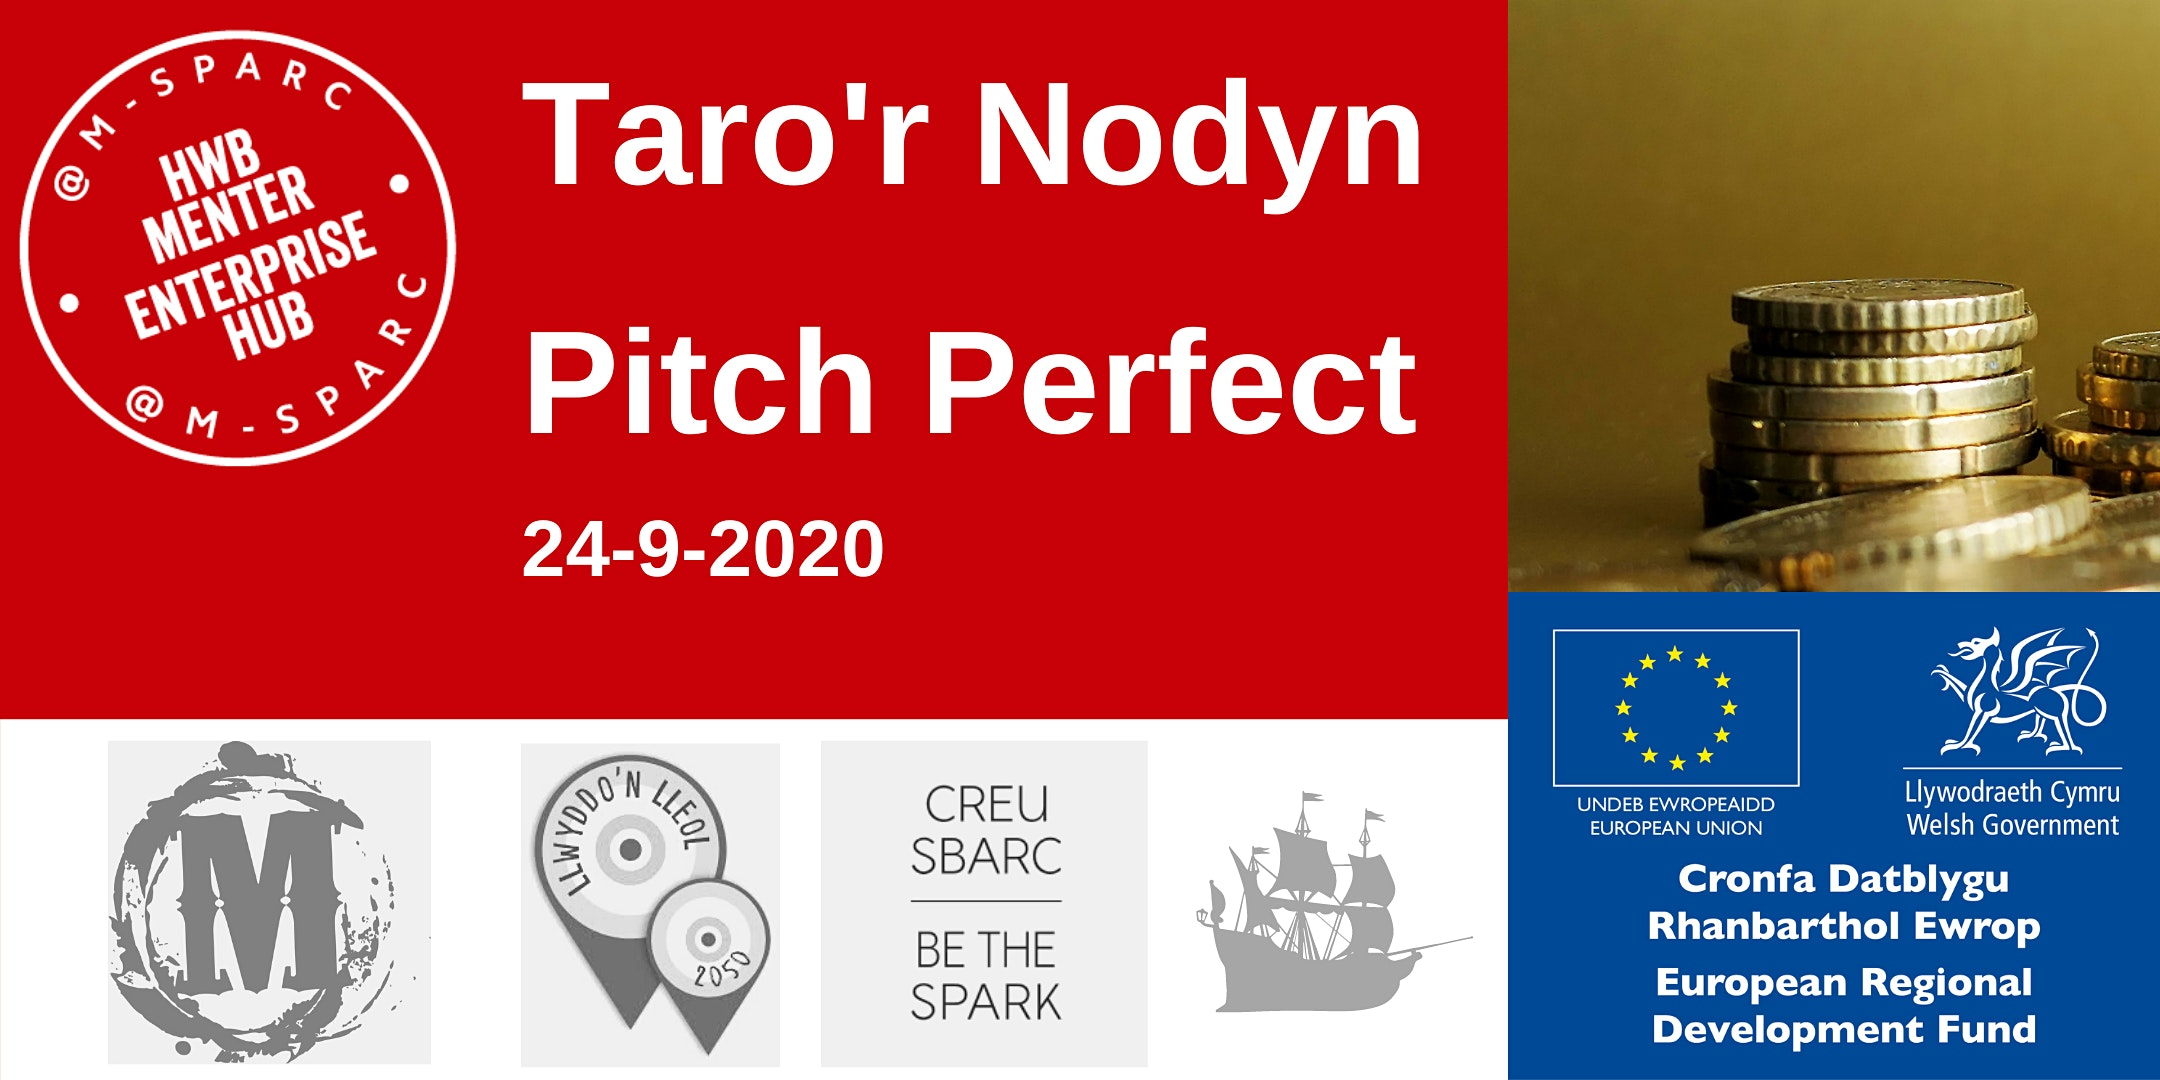 Taro'r Nodyn - Pitch Perfect